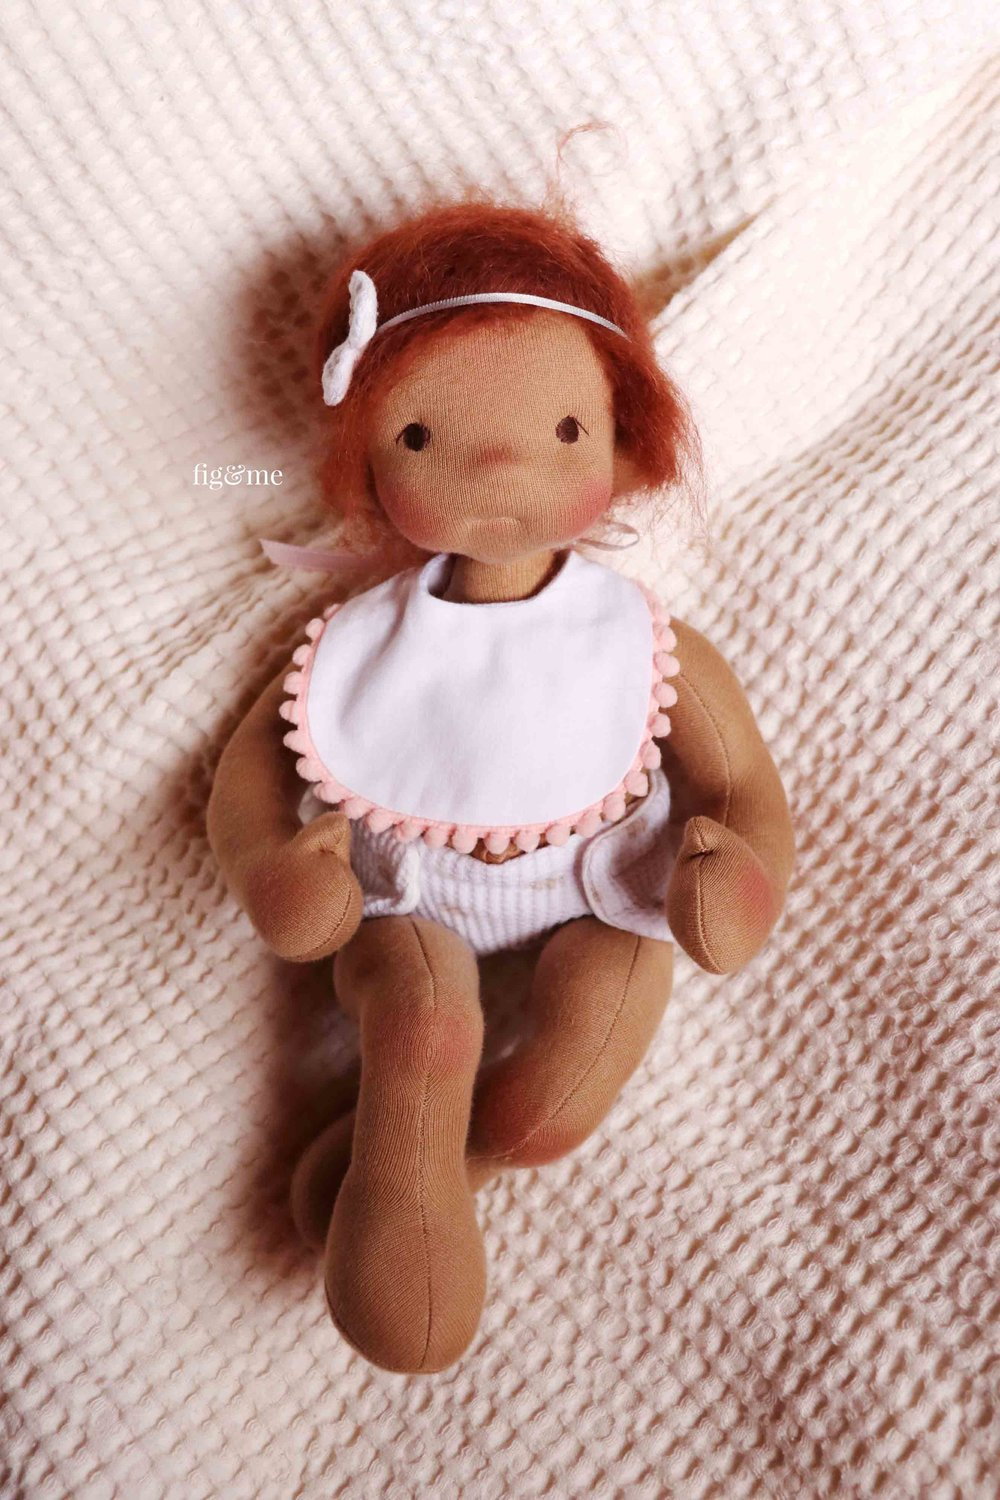 Sweet Baby Kasja, a weighted cloth doll by Fig and Me.